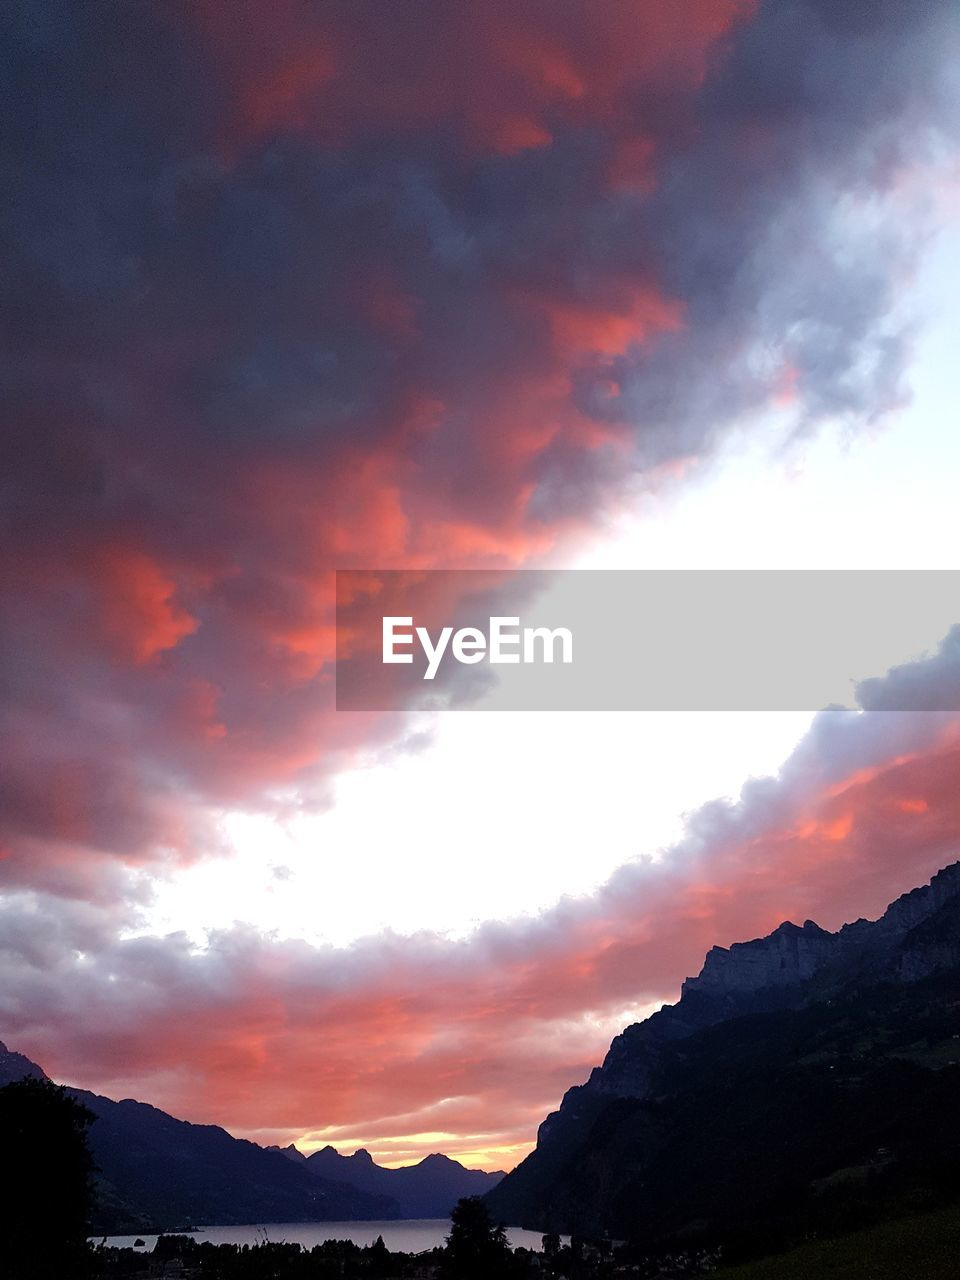 sunset, mountain, beauty in nature, nature, sky, scenics, tranquil scene, silhouette, tranquility, dramatic sky, no people, cloud - sky, outdoors, landscape, scenery, day